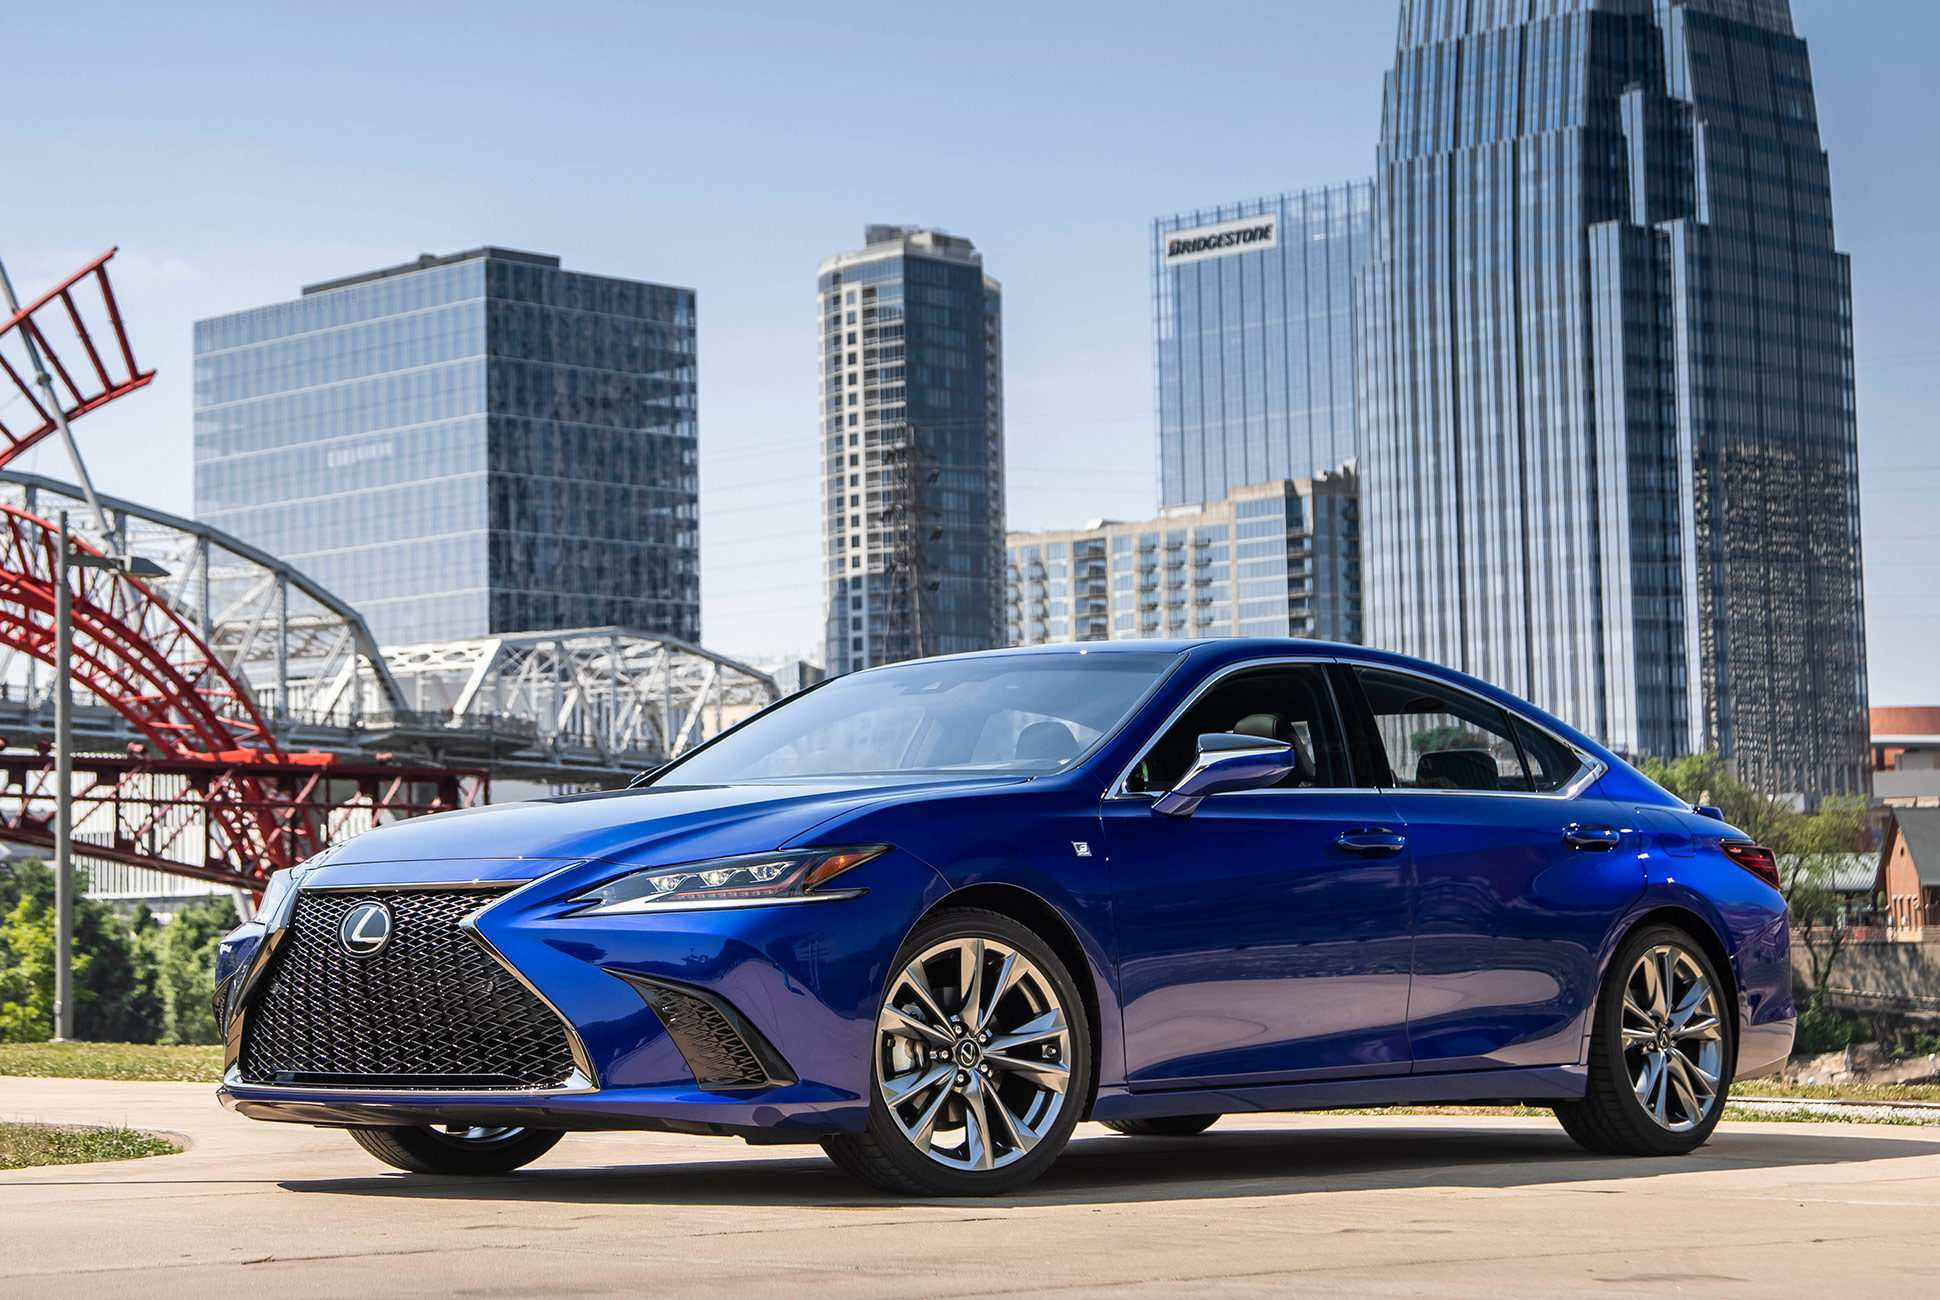 30 Great The Lexus Es 2019 Weight Review And Specs Style for The Lexus Es 2019 Weight Review And Specs